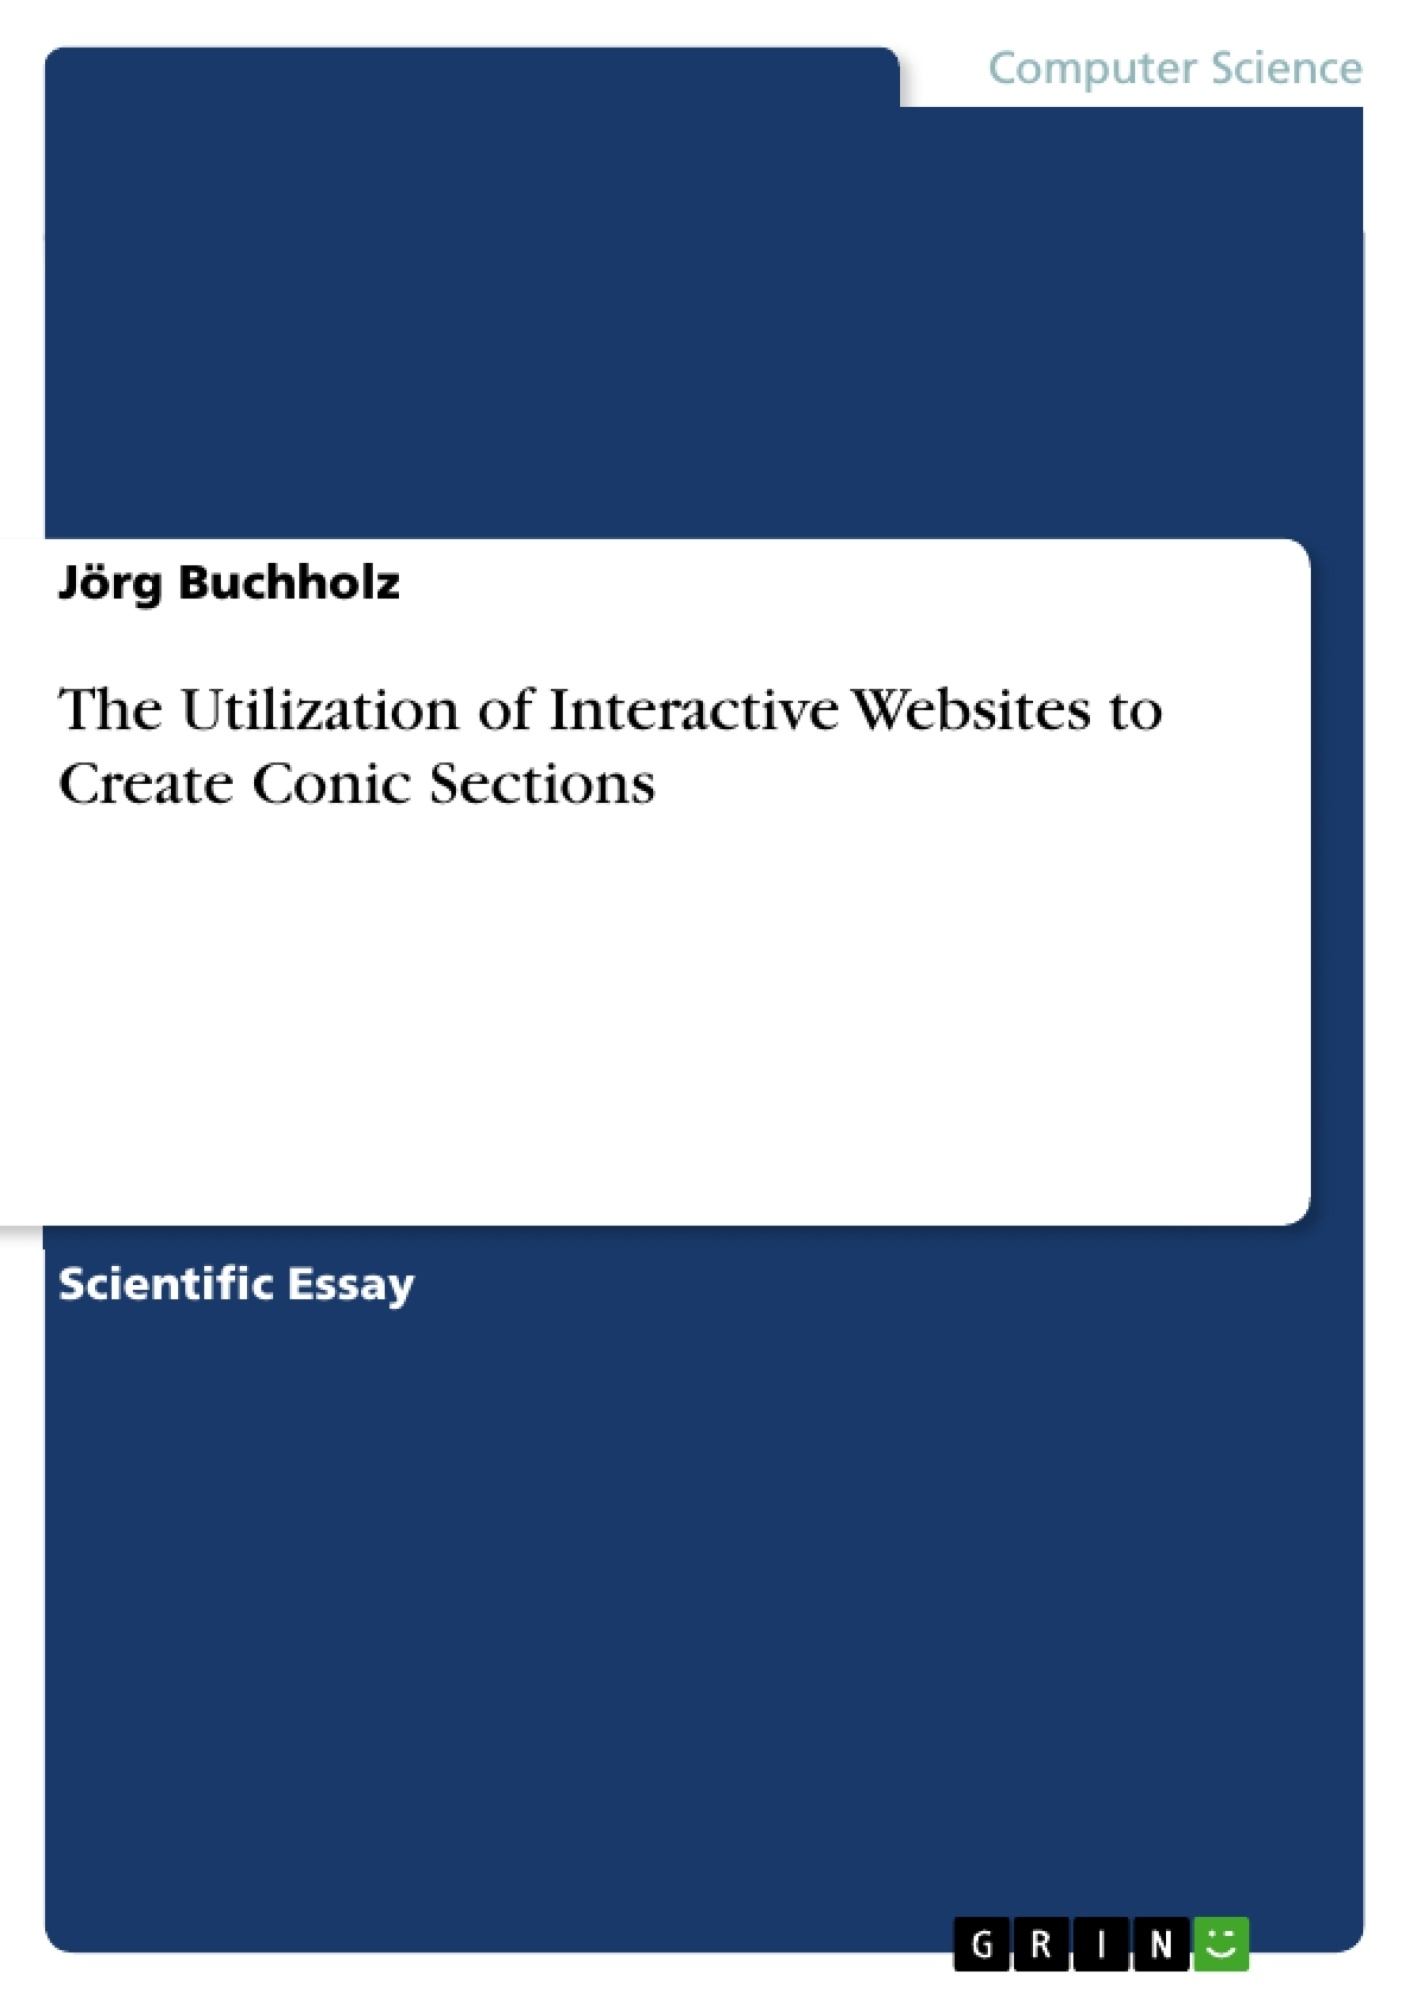 Title: The Utilization of Interactive Websites to Create Conic Sections